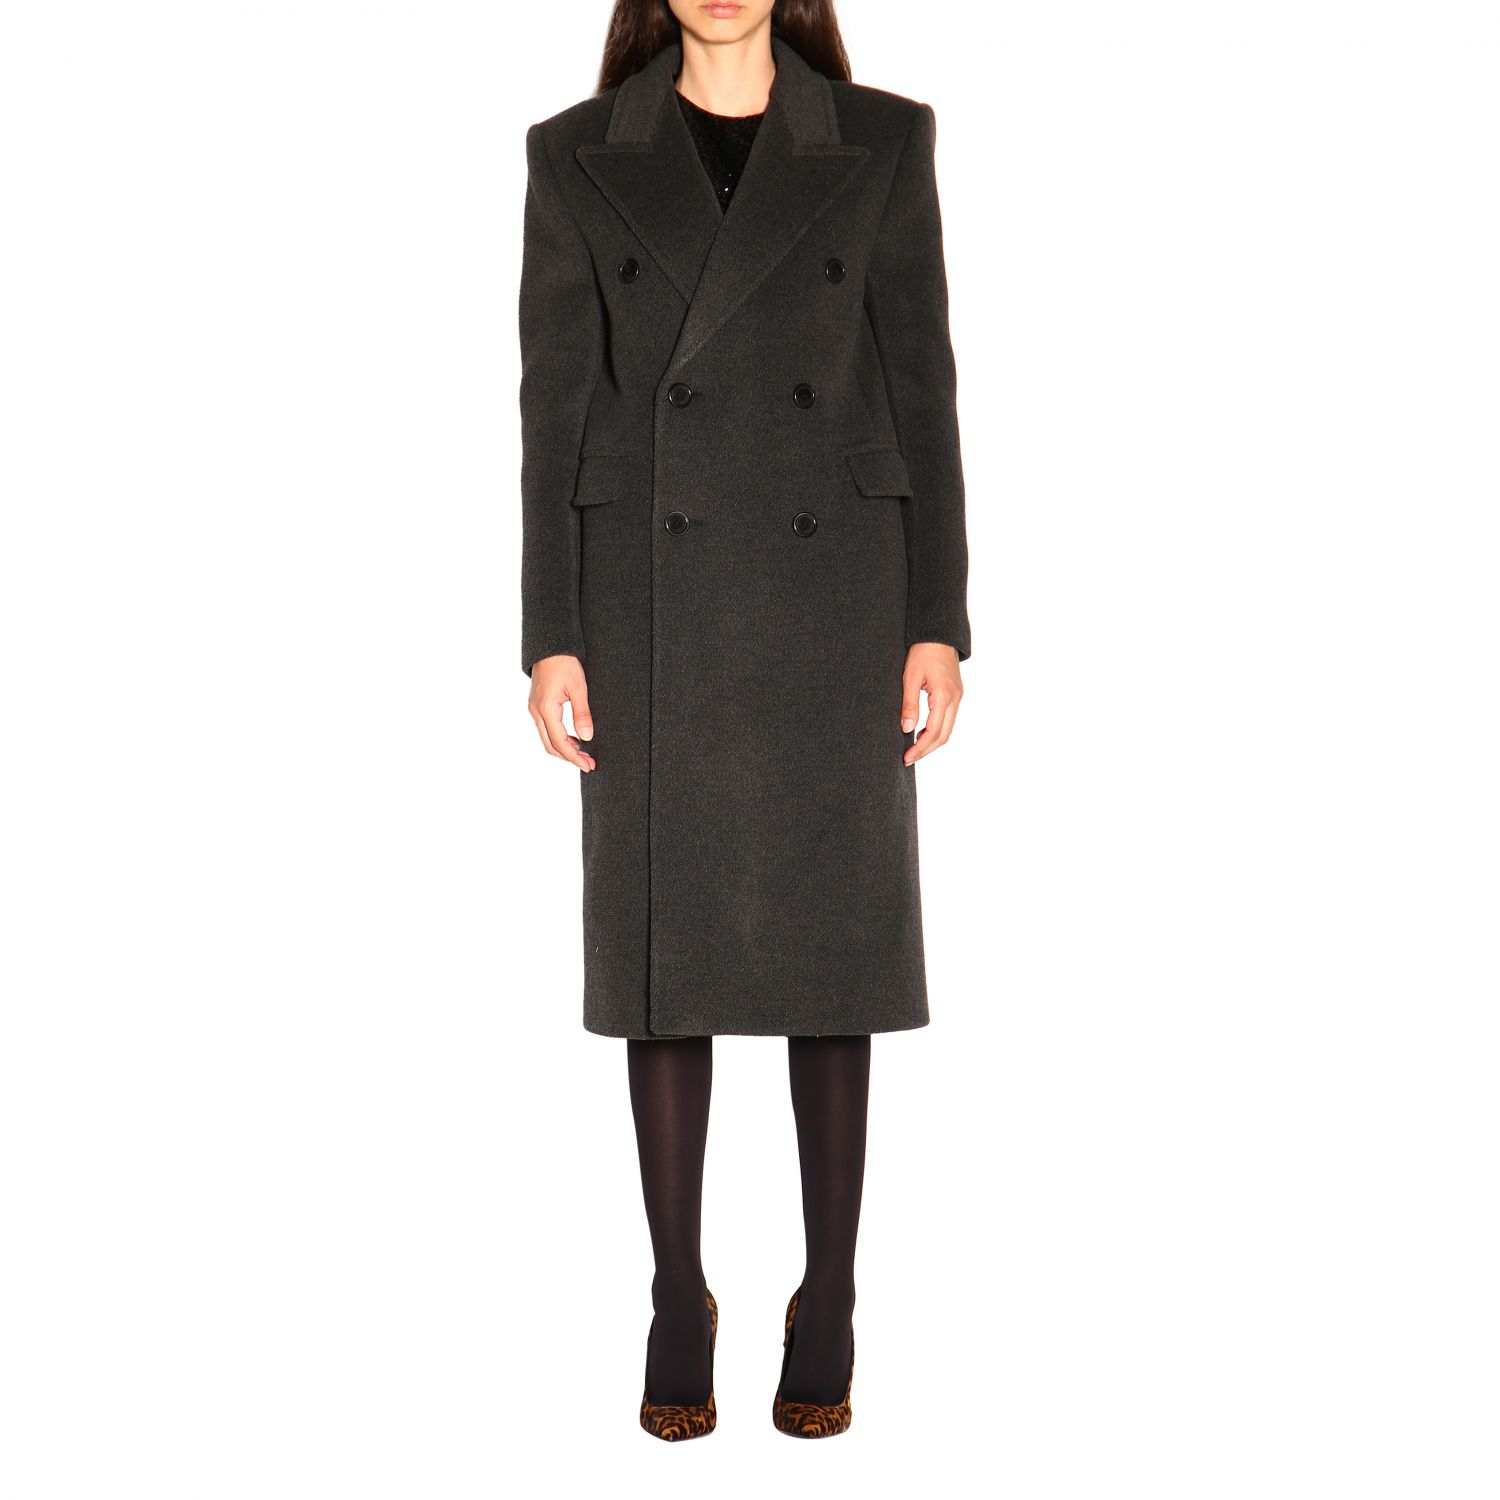 Coat women Saint Laurent charcoal 1